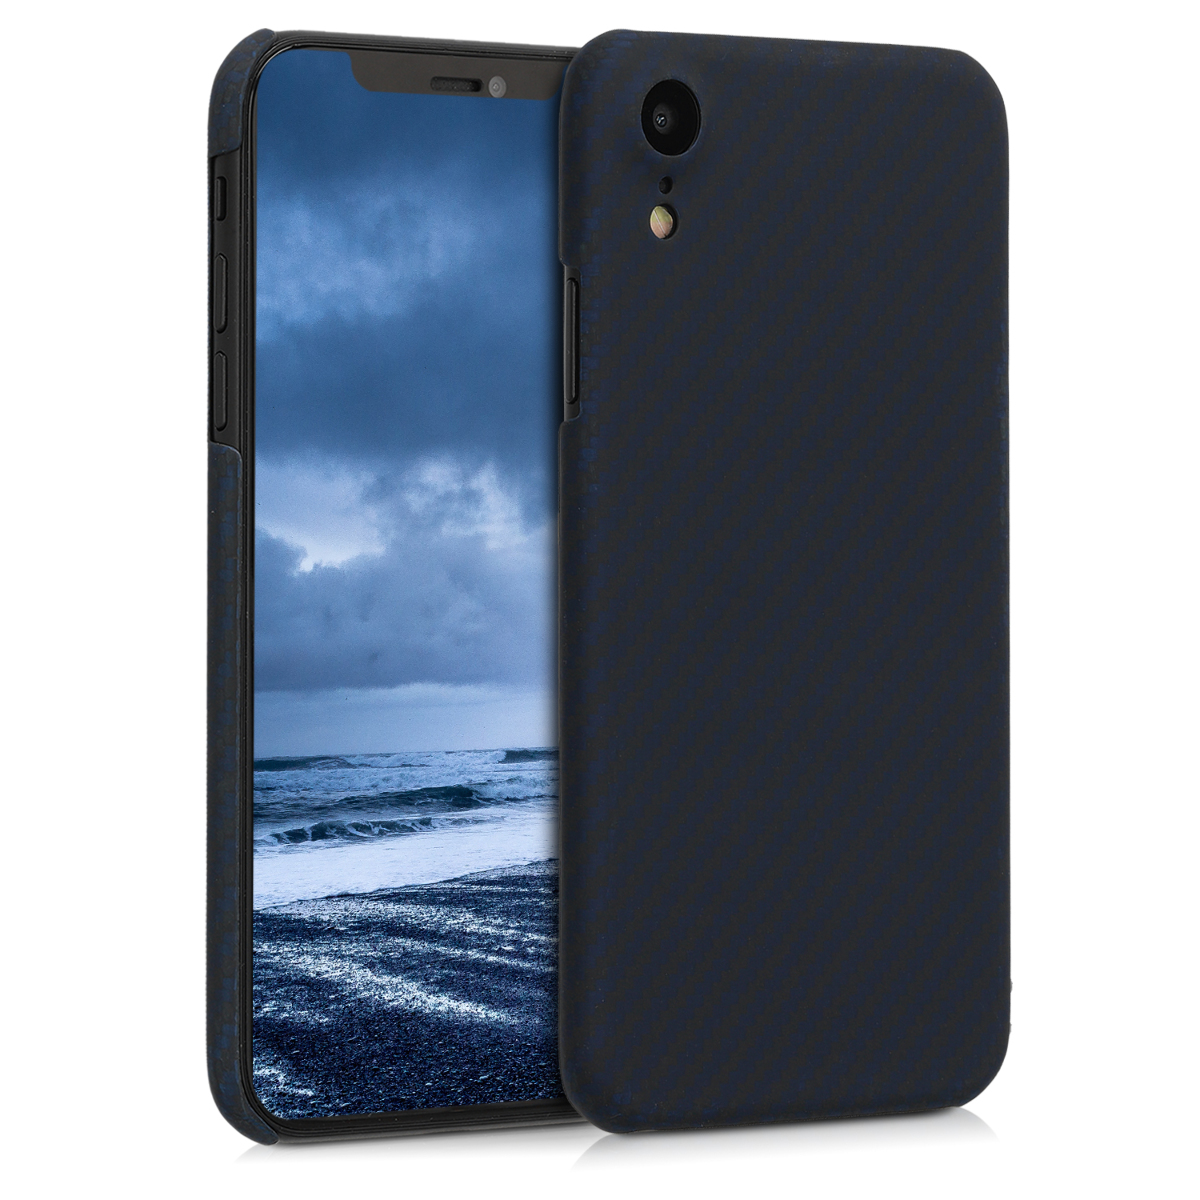 Kalibri Aramid Fiber Body - Σκληρή Θήκη Apple iPhone XR - Dark Blue / Black (45954.17)